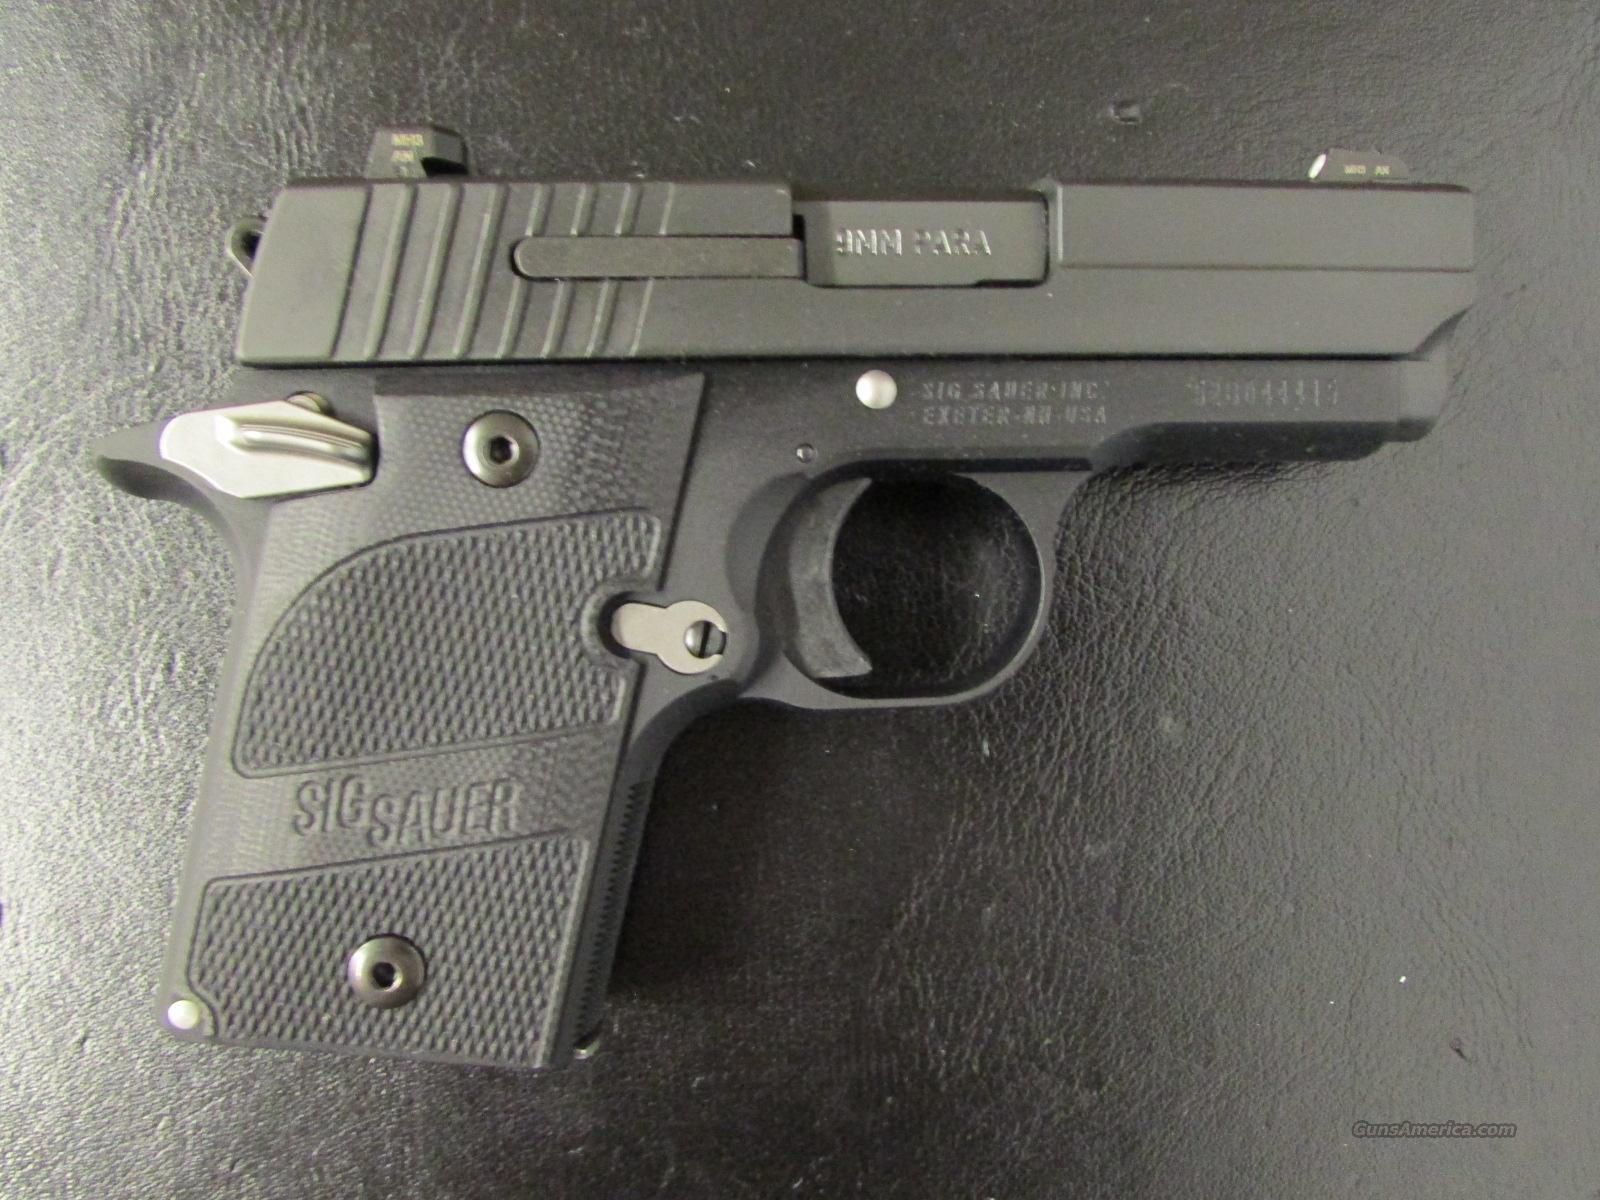 Sig Sauer P938 Nightmare Sub-Compact 9mm Luger/PARA. 938-9-NMR-AMBI  Guns > Pistols > Sig - Sauer/Sigarms Pistols > Other